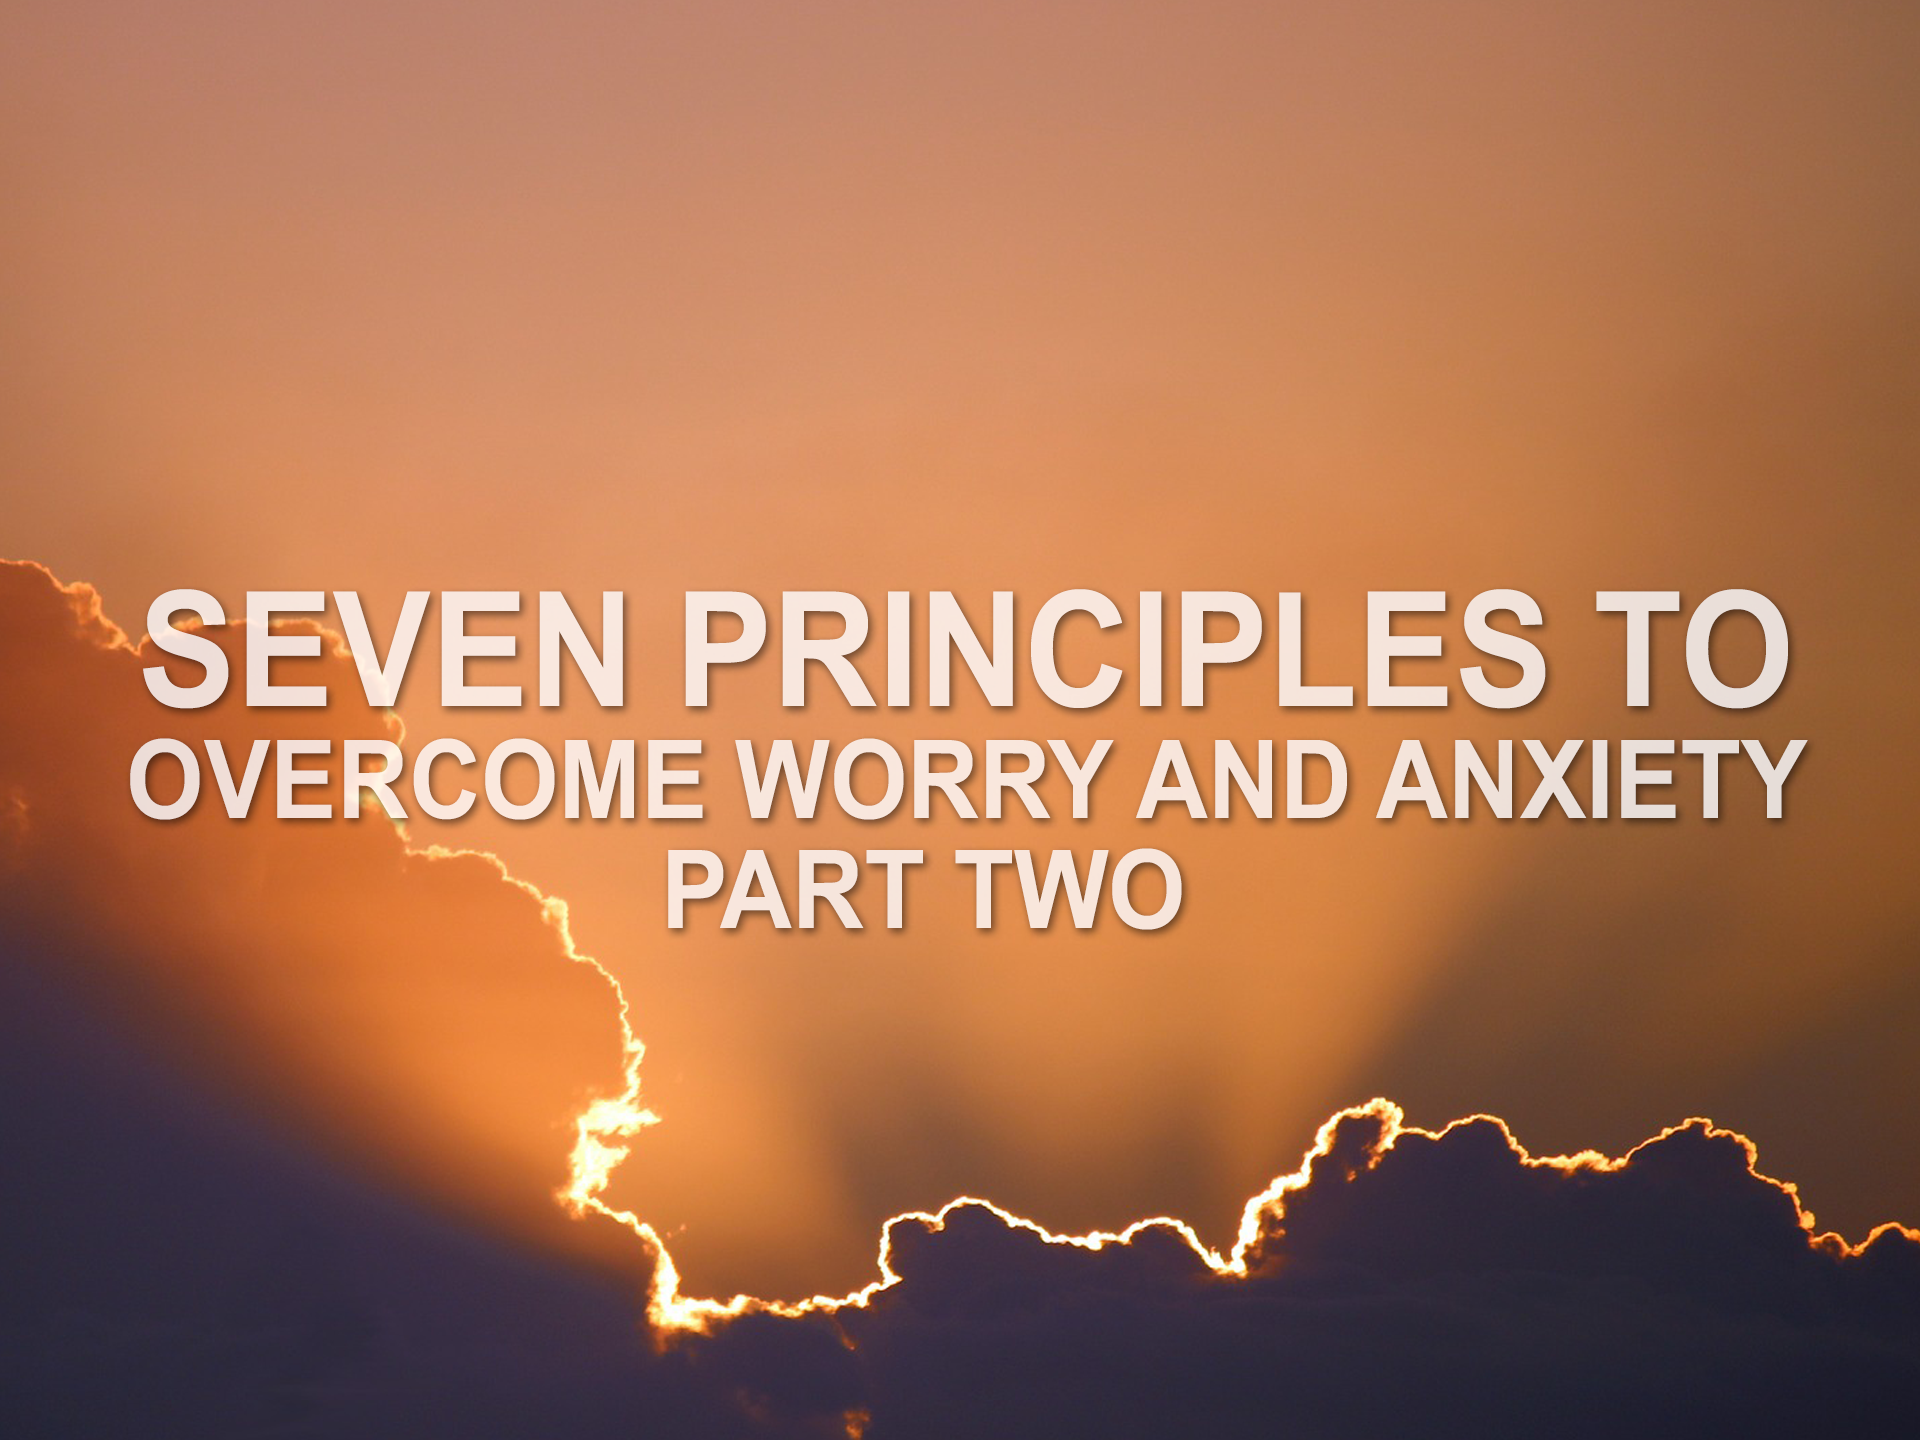 063019 seven principles to overcome worry and anxiety part 2.png